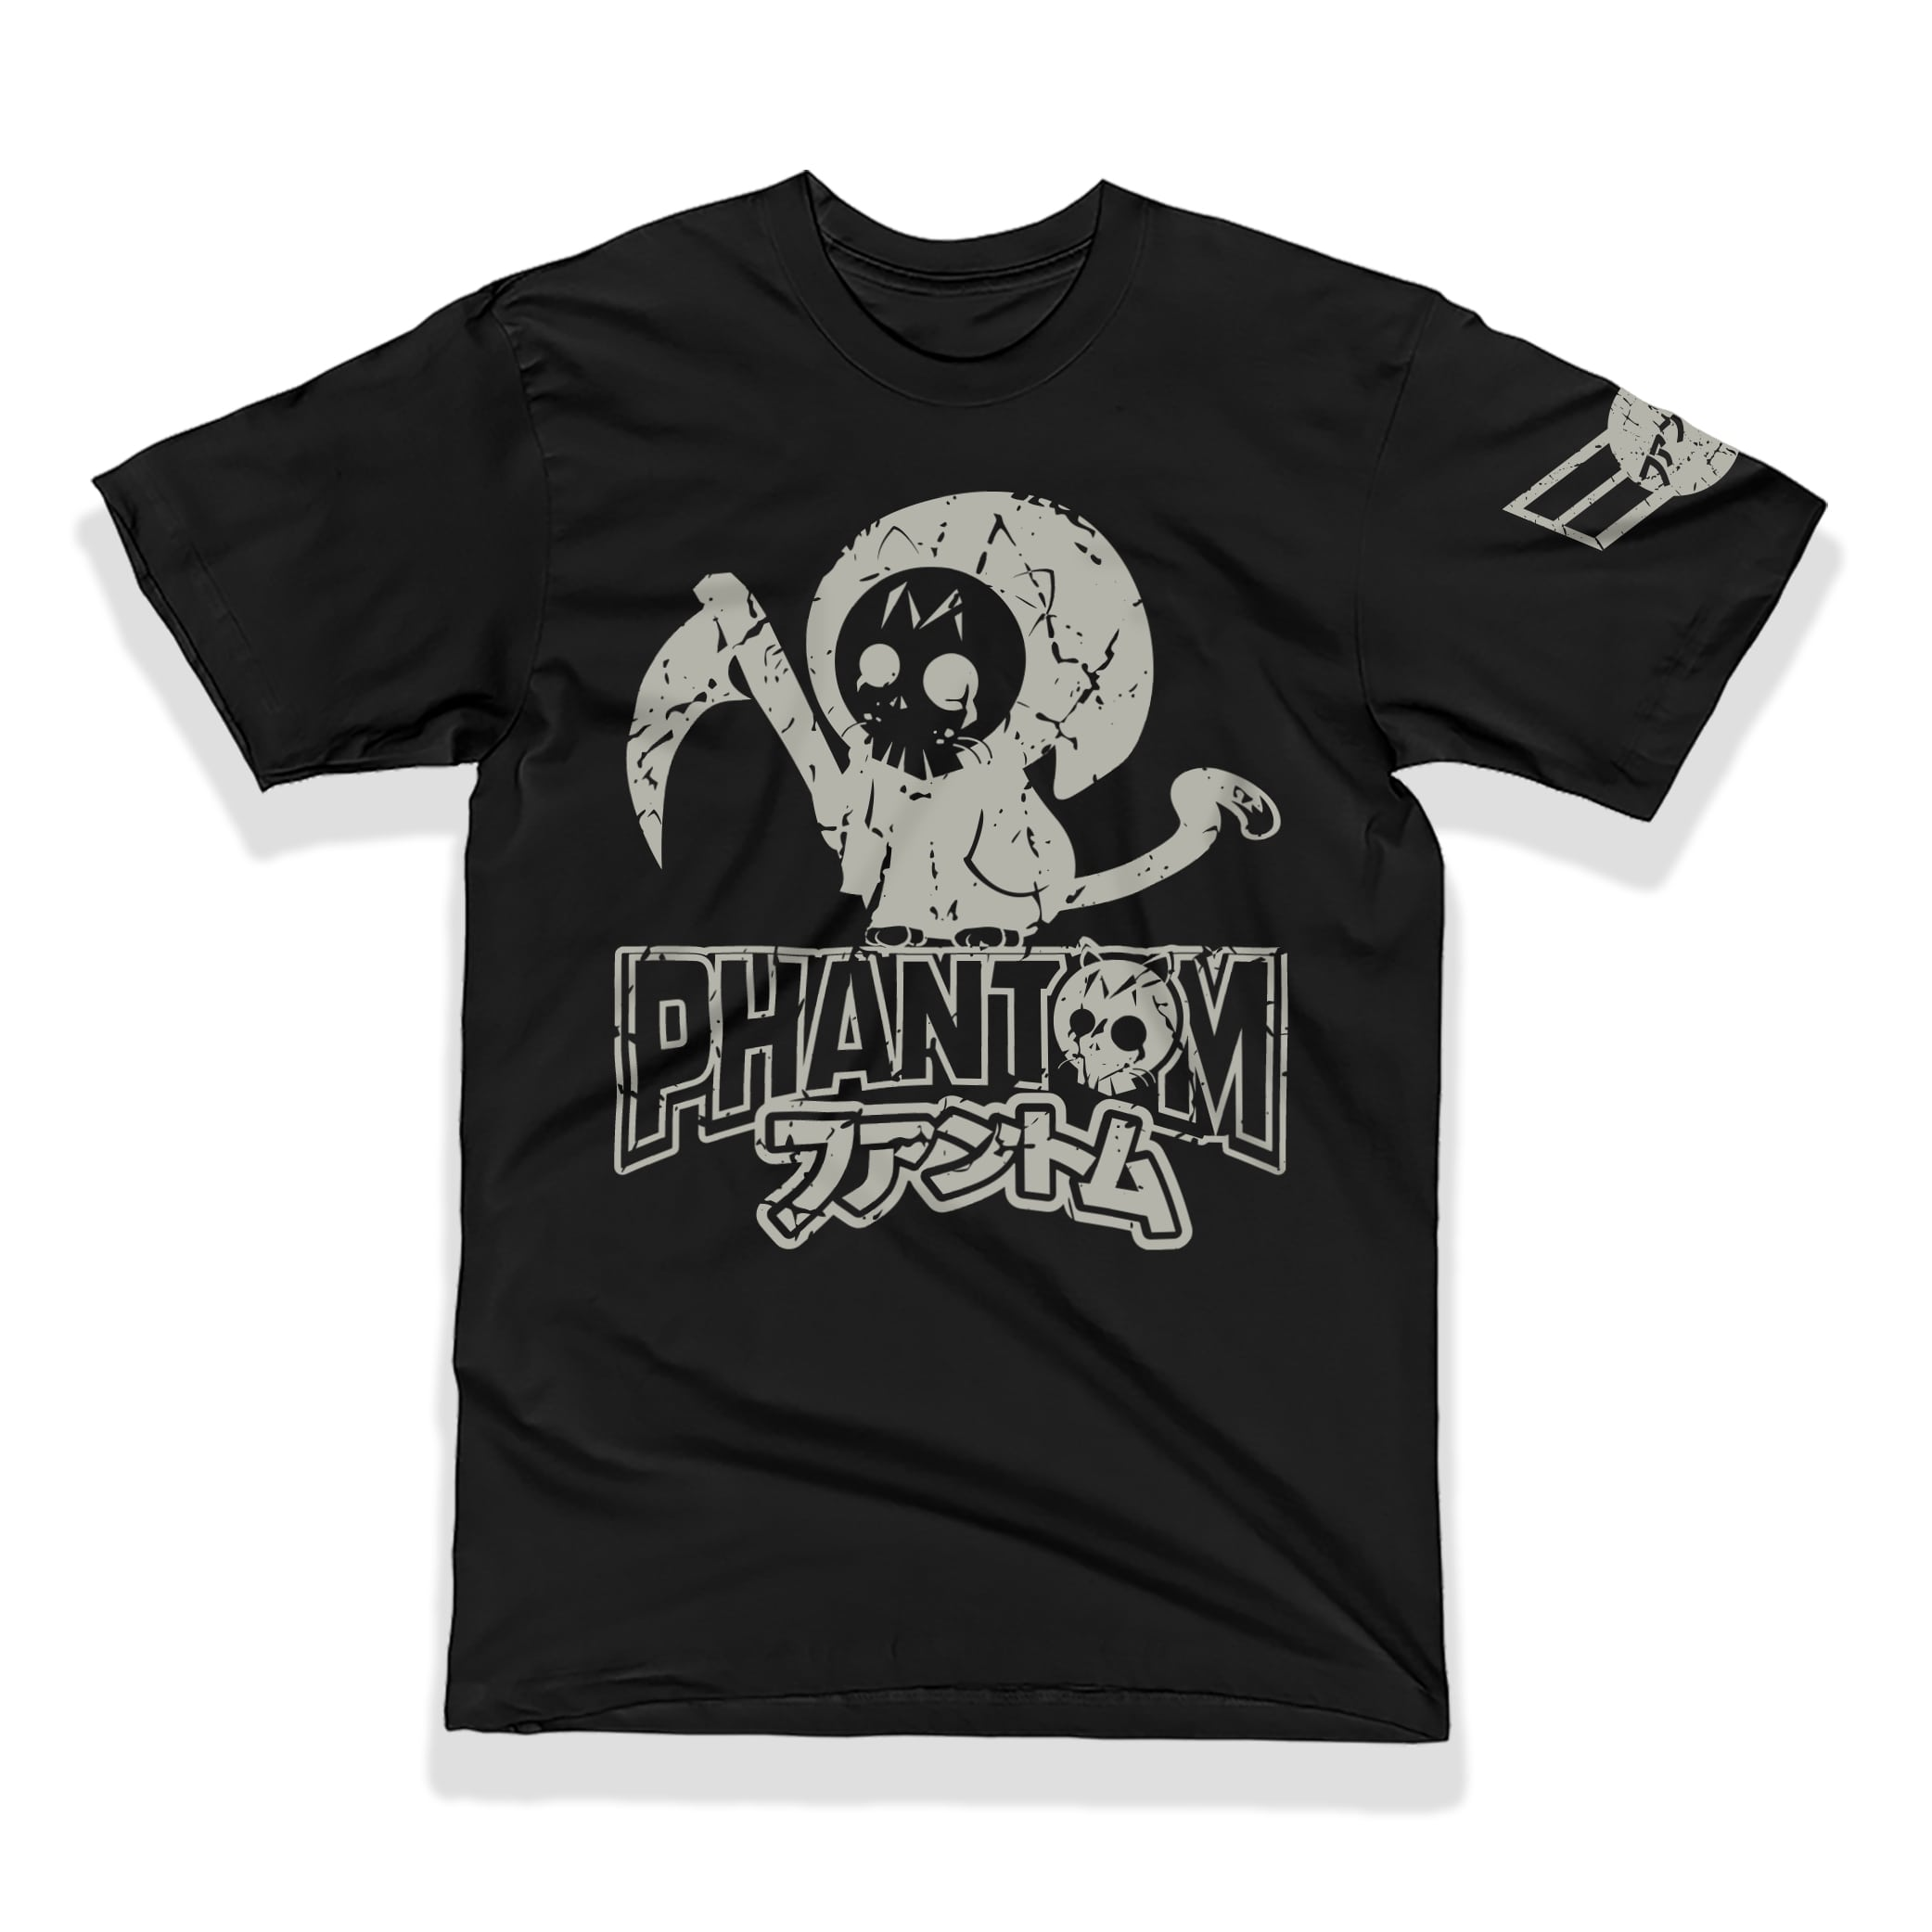 Chasing Fame, Signature Tees - Phantom Tees®